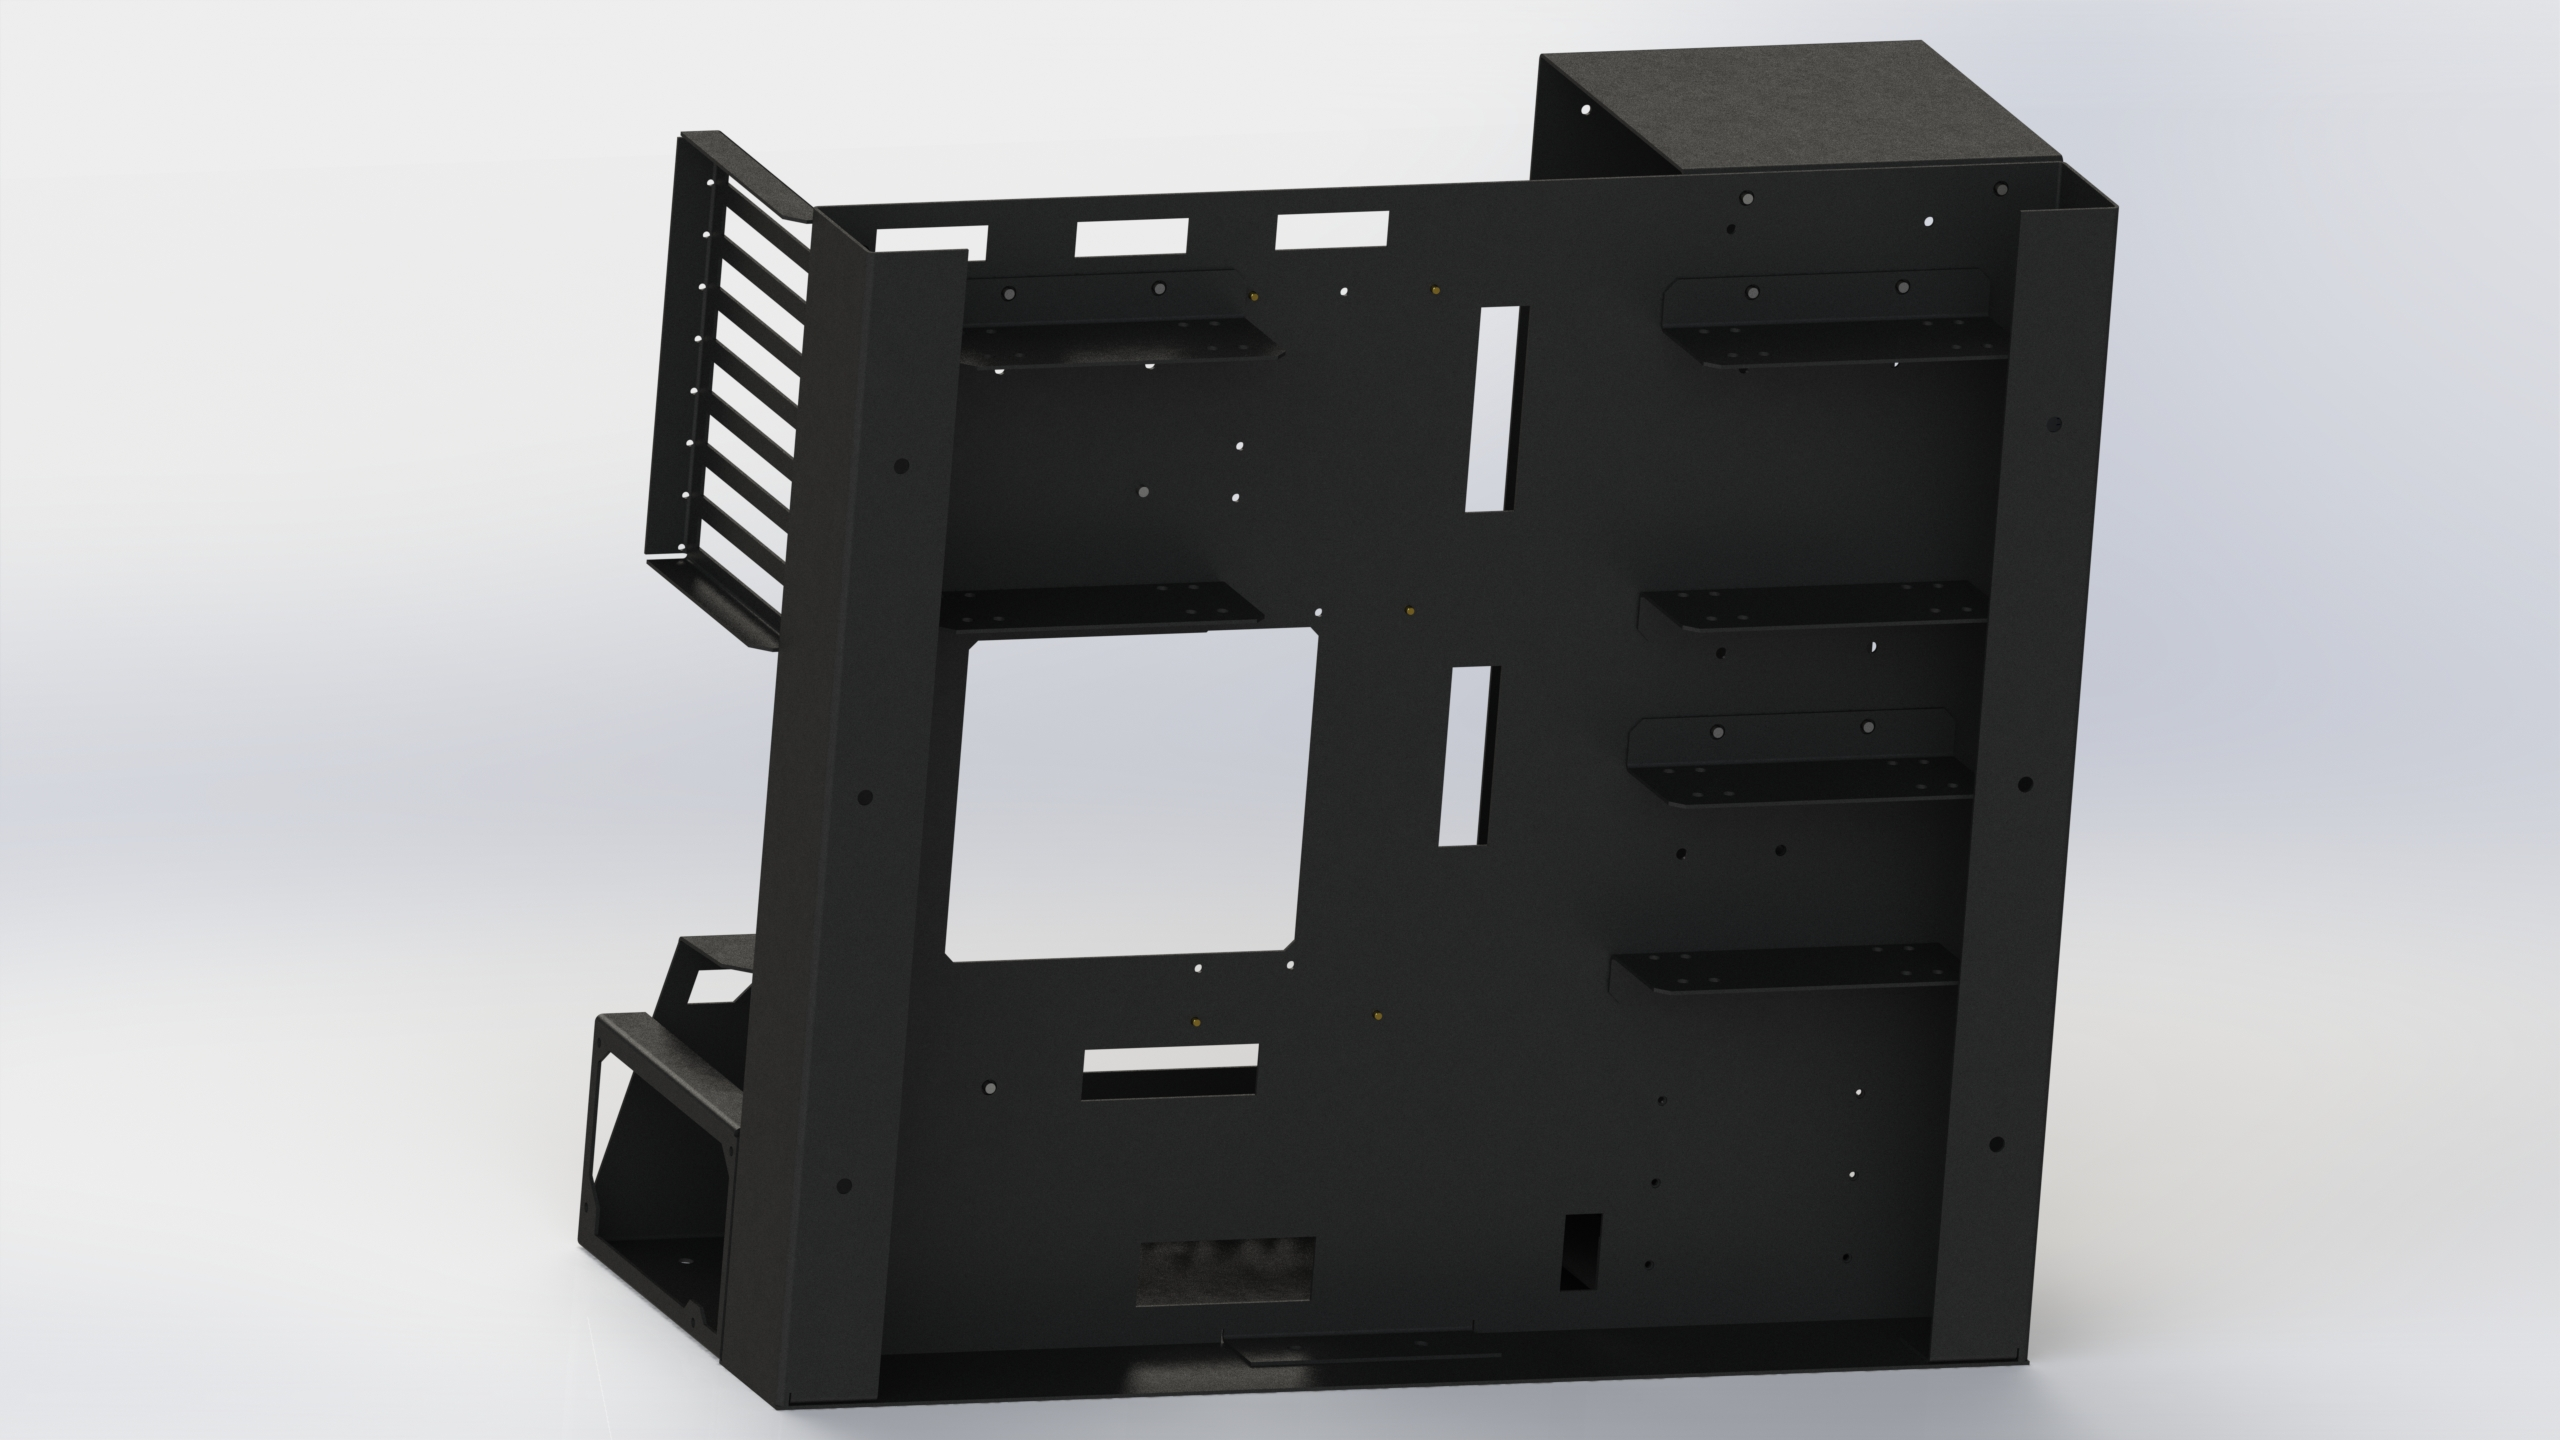 HYDRA Announces NR-01 Open Case Chassis + Bench — Modders-Inc